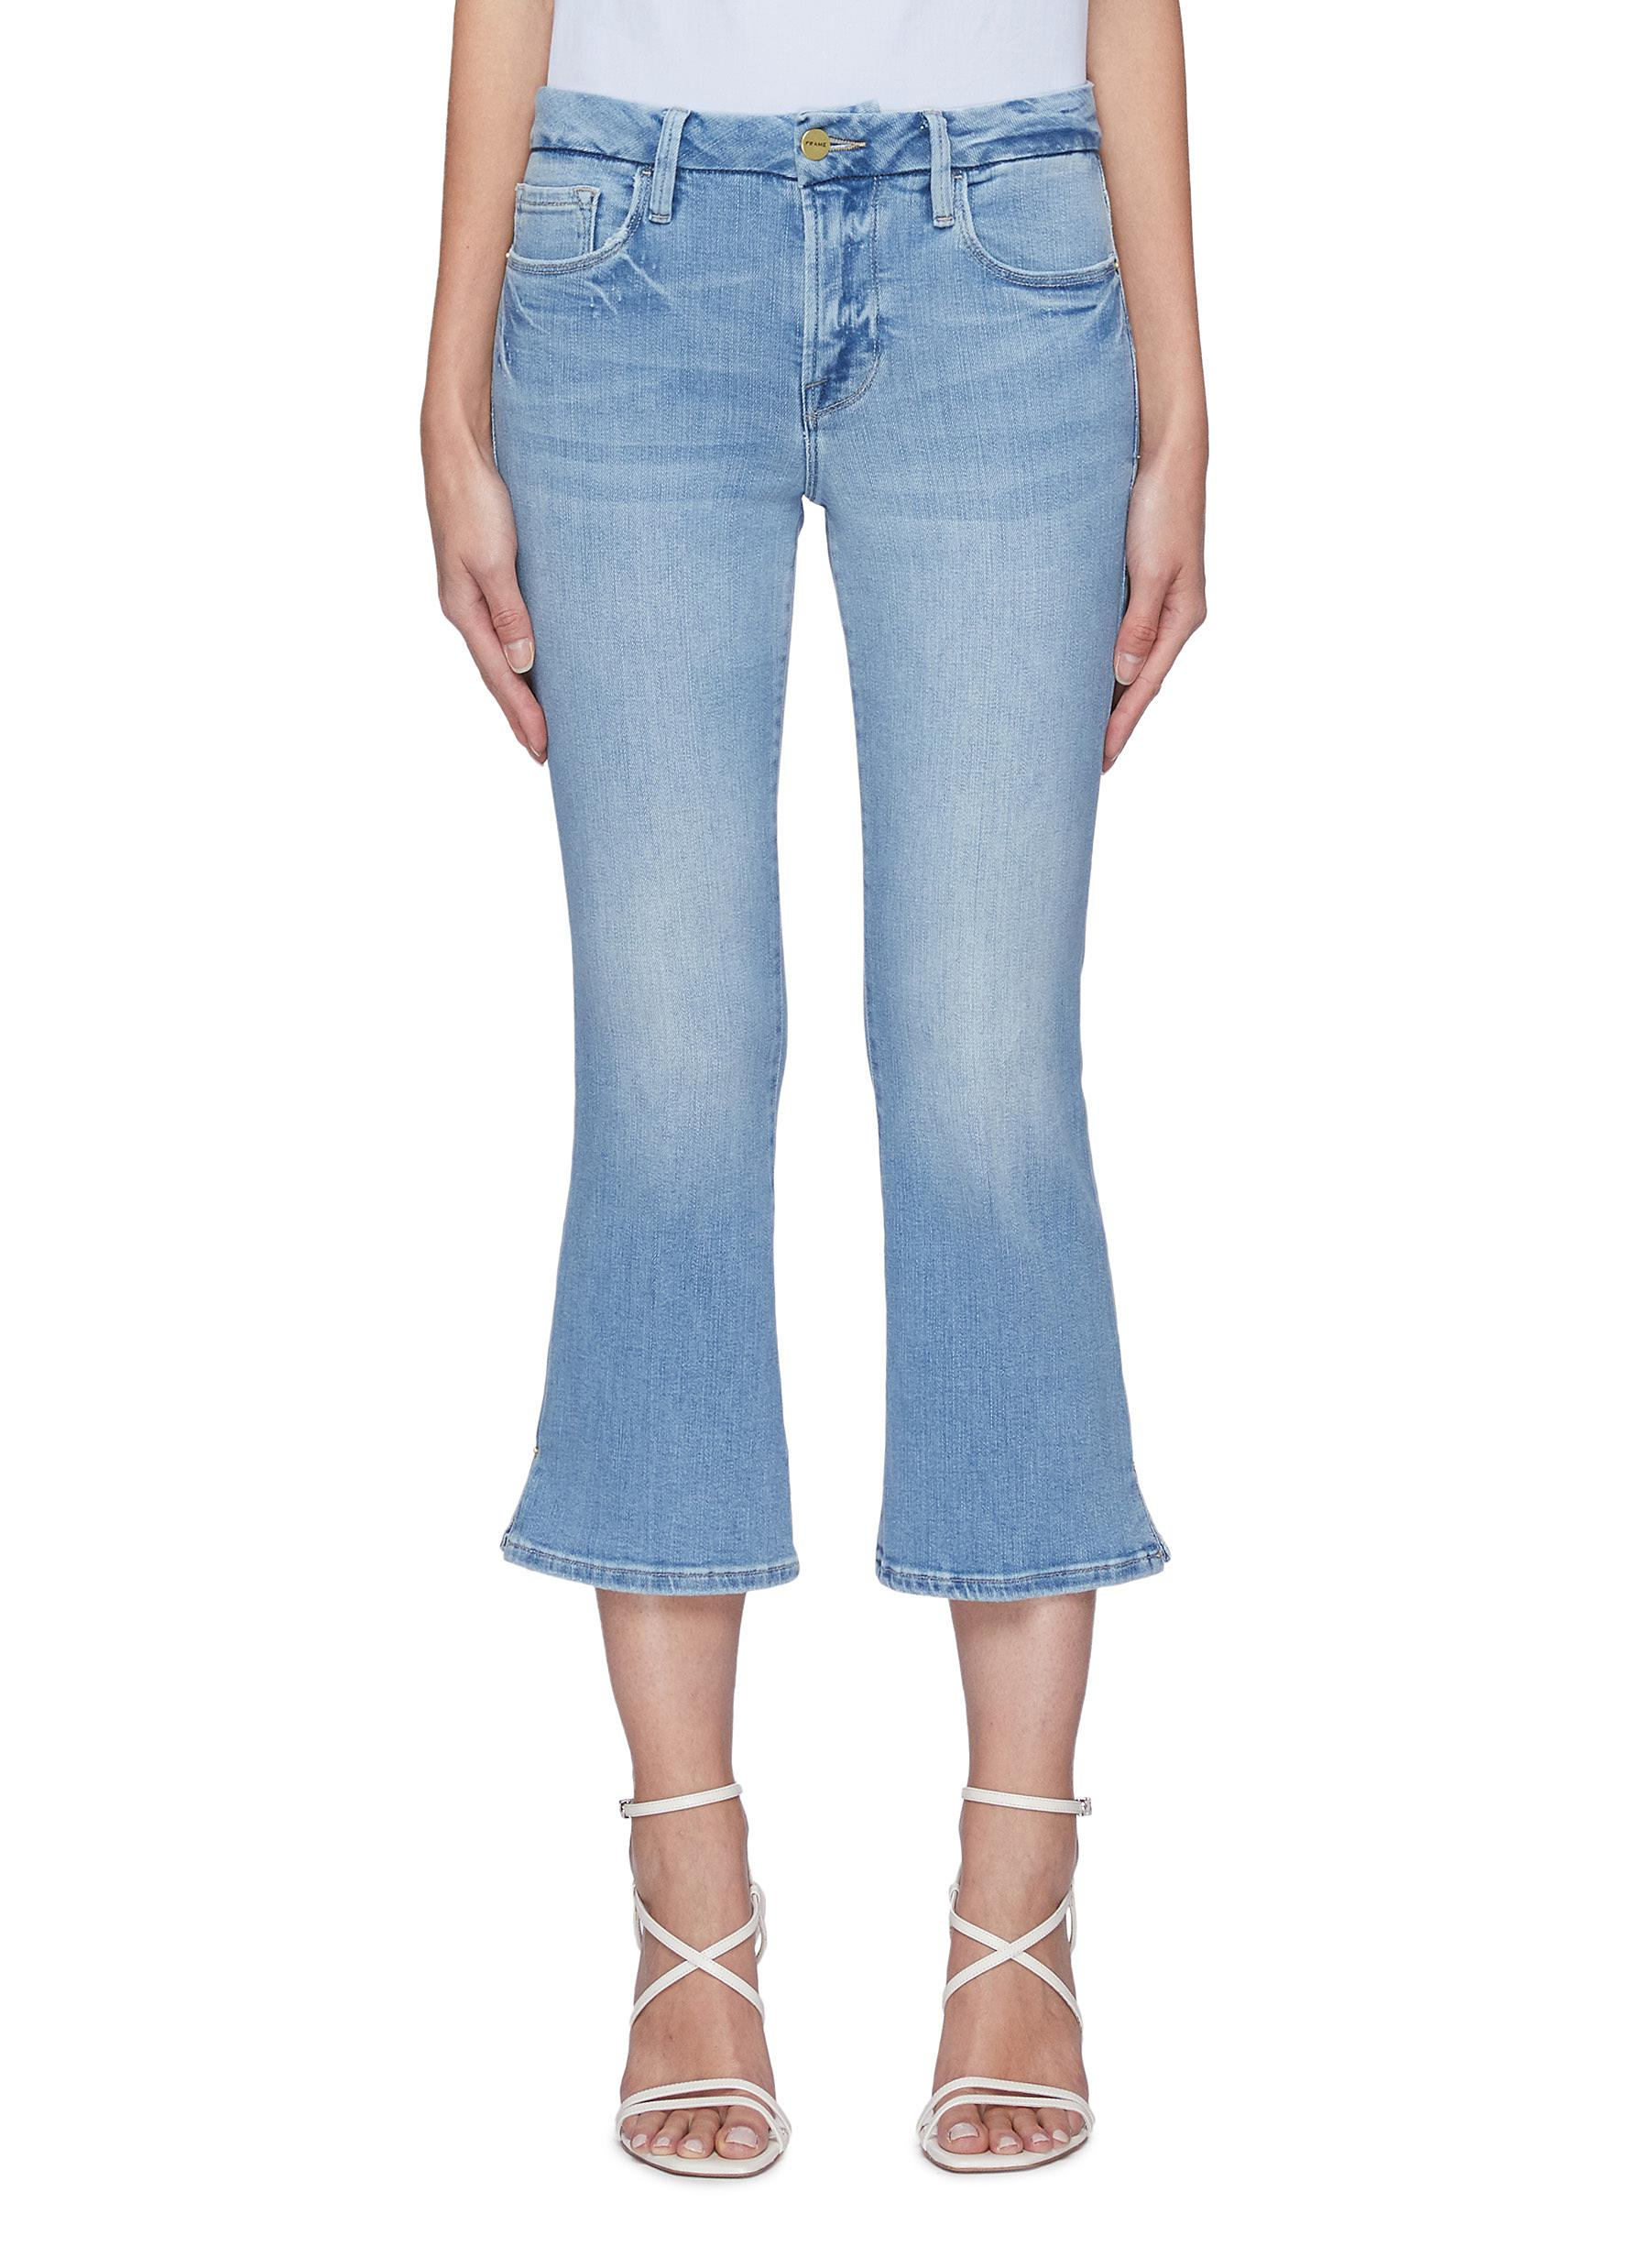 'Le Pixie Crop' flared jeans